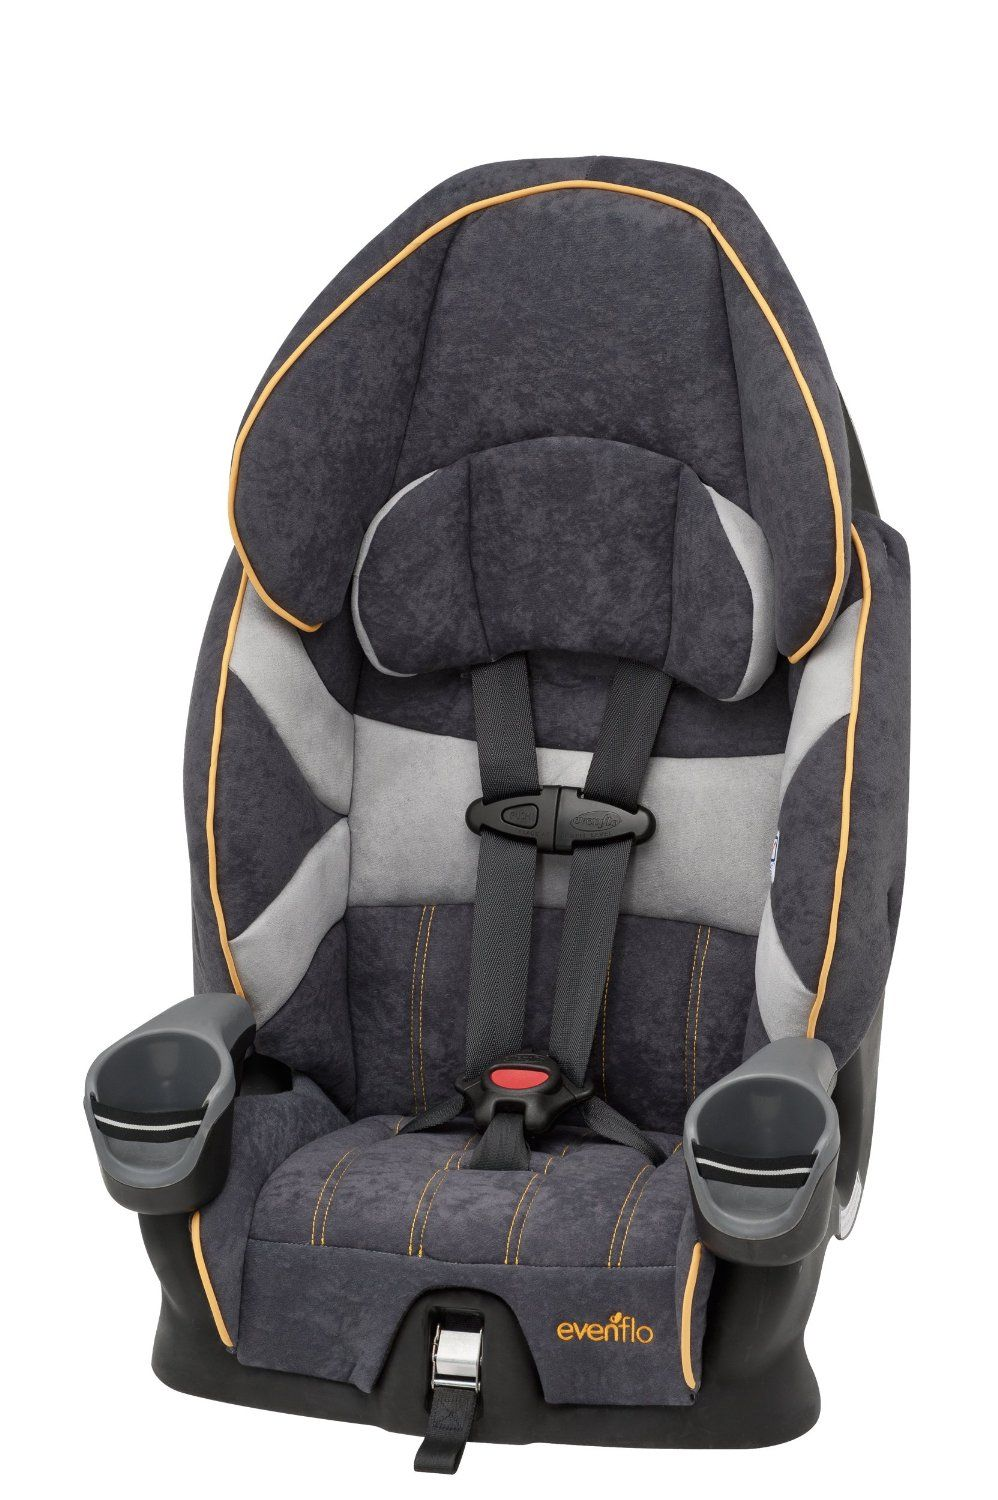 70 Evenflo Maestro Booster Car Seat, Wesley